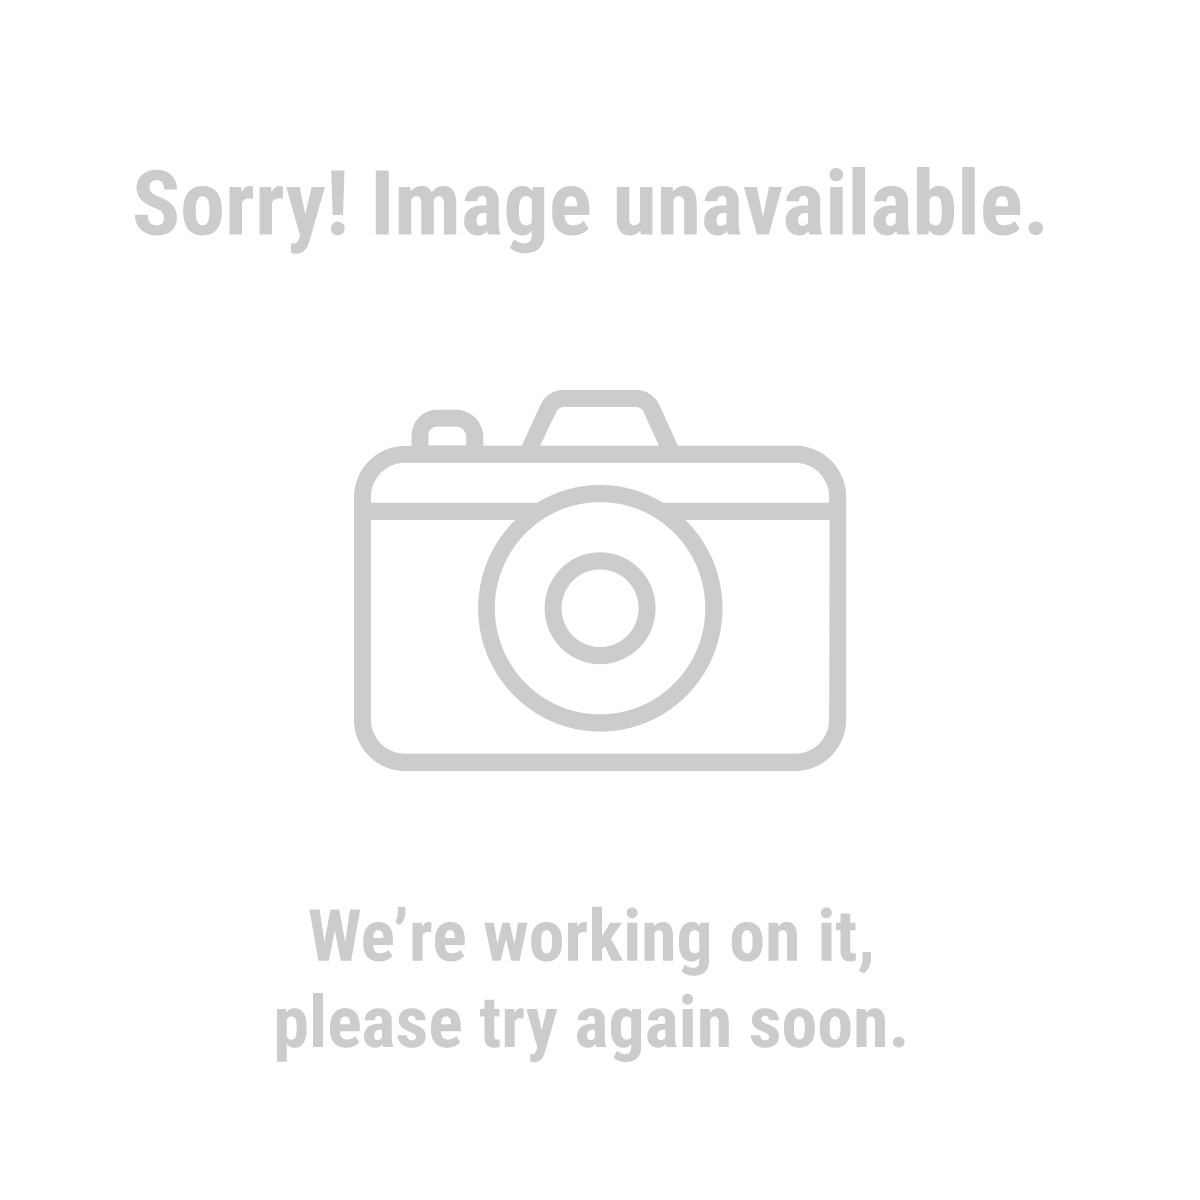 "Warrior 68905 3-1/2"" Multi-Tool Half-Moon Blade"